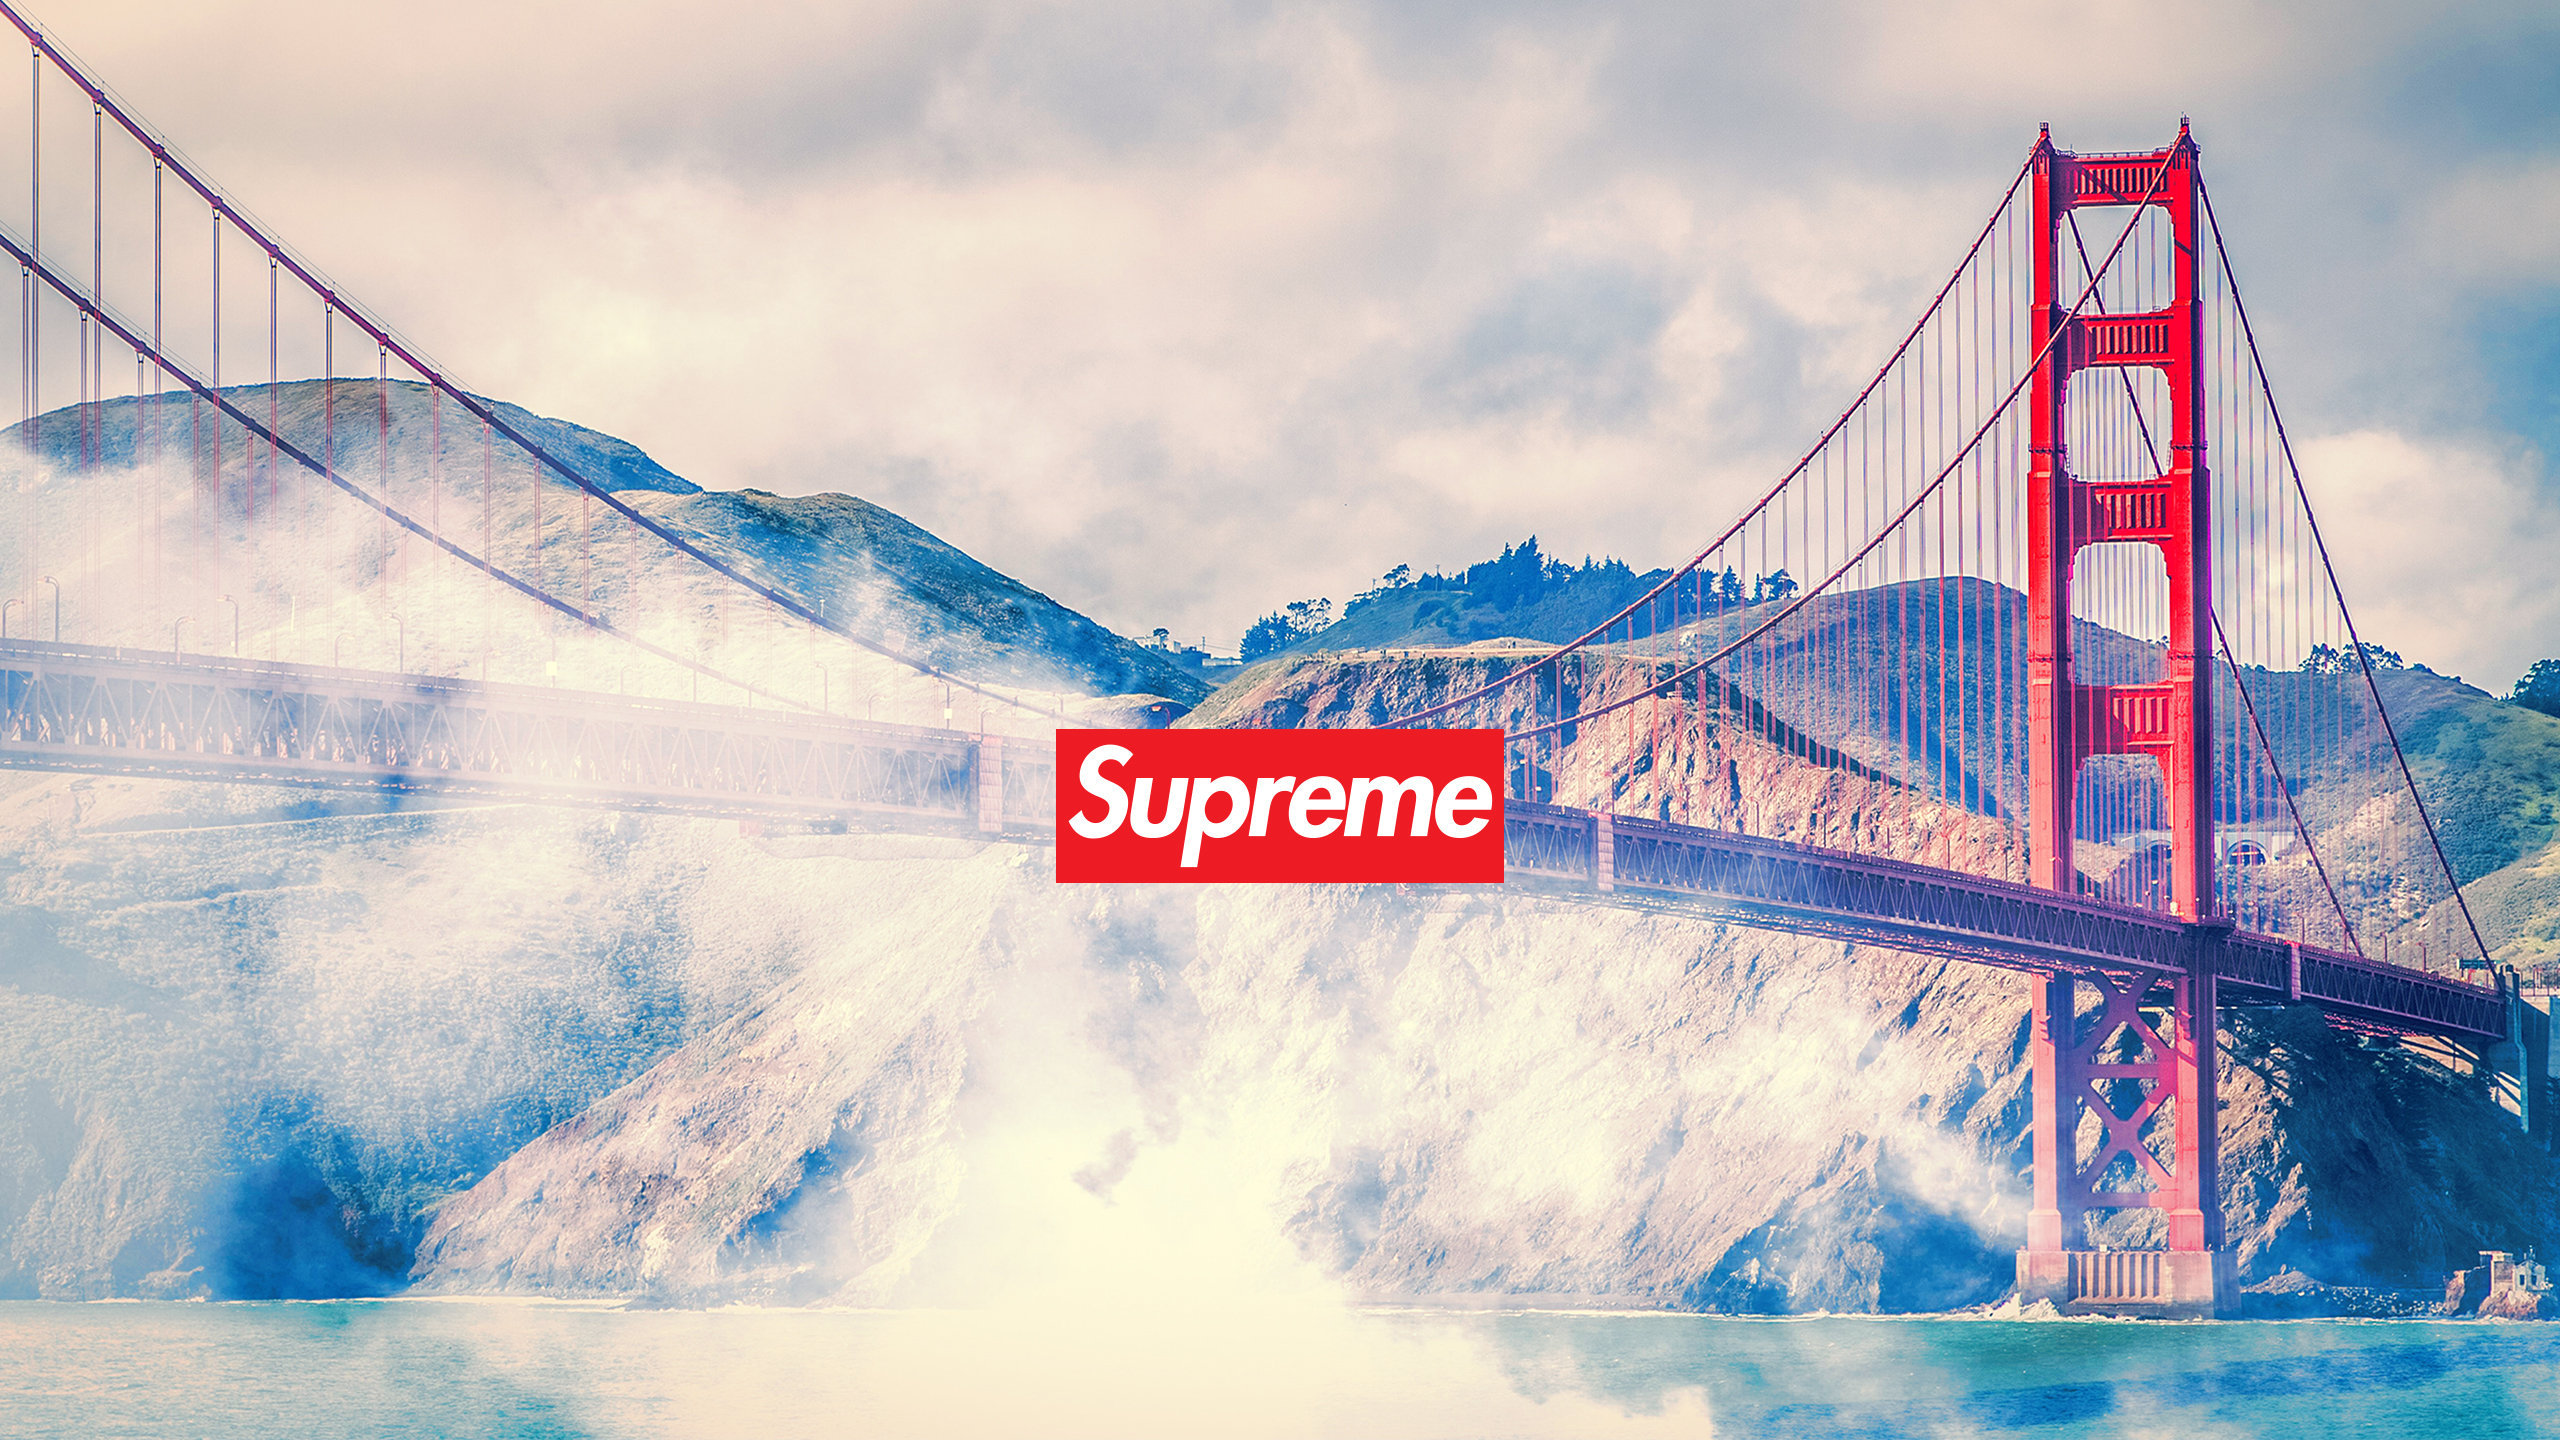 Supreme Brand Wallpaper